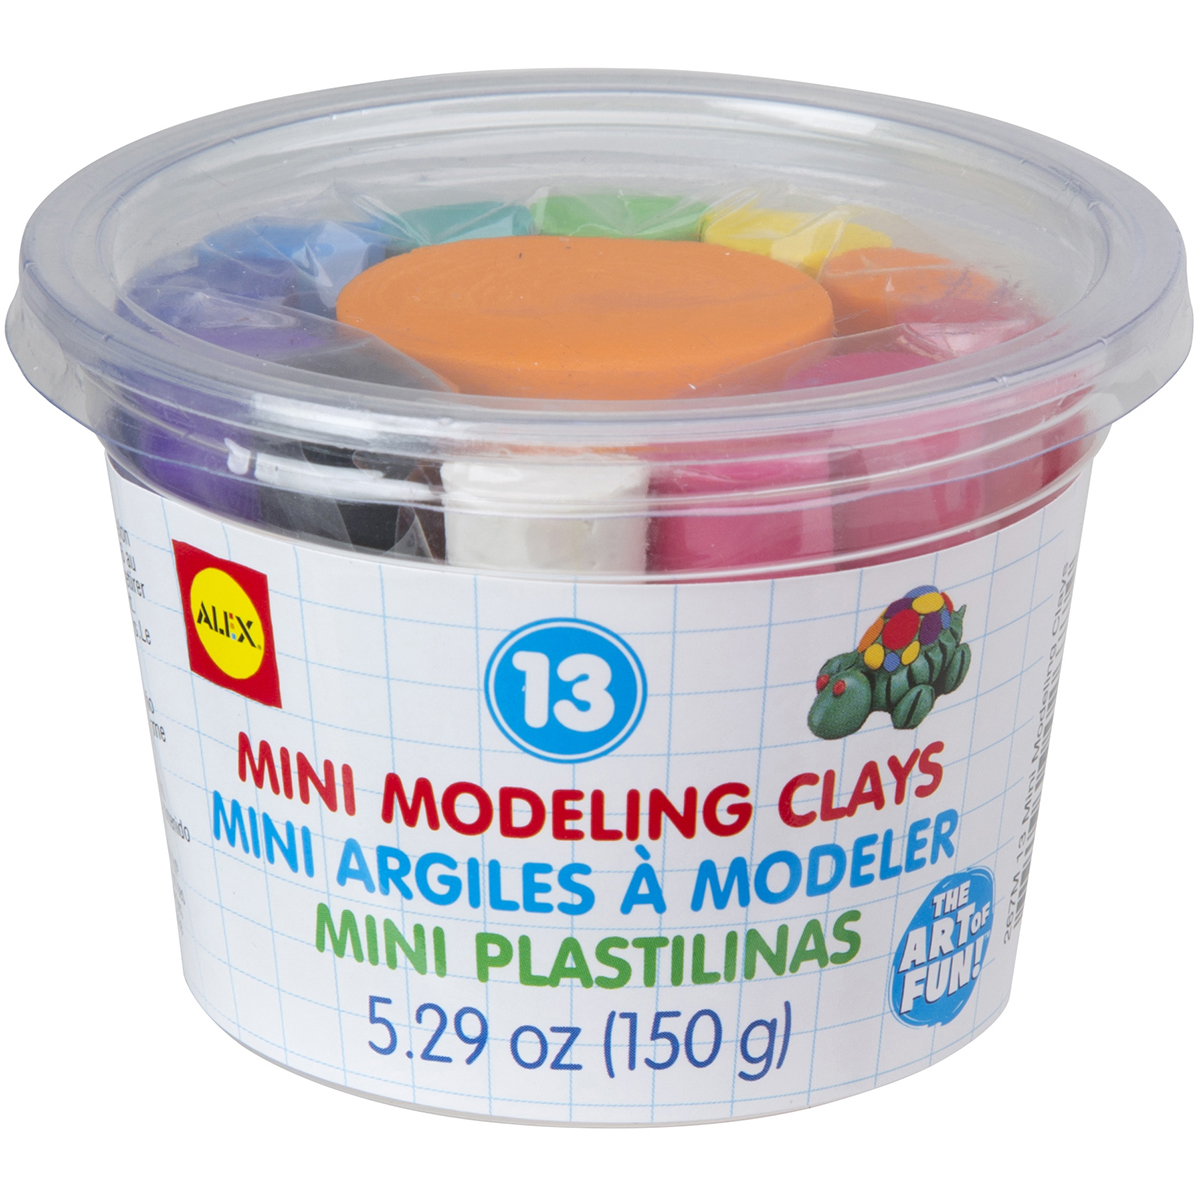 ALEX Toys Artist Studio 13  Mini Modeling Clays